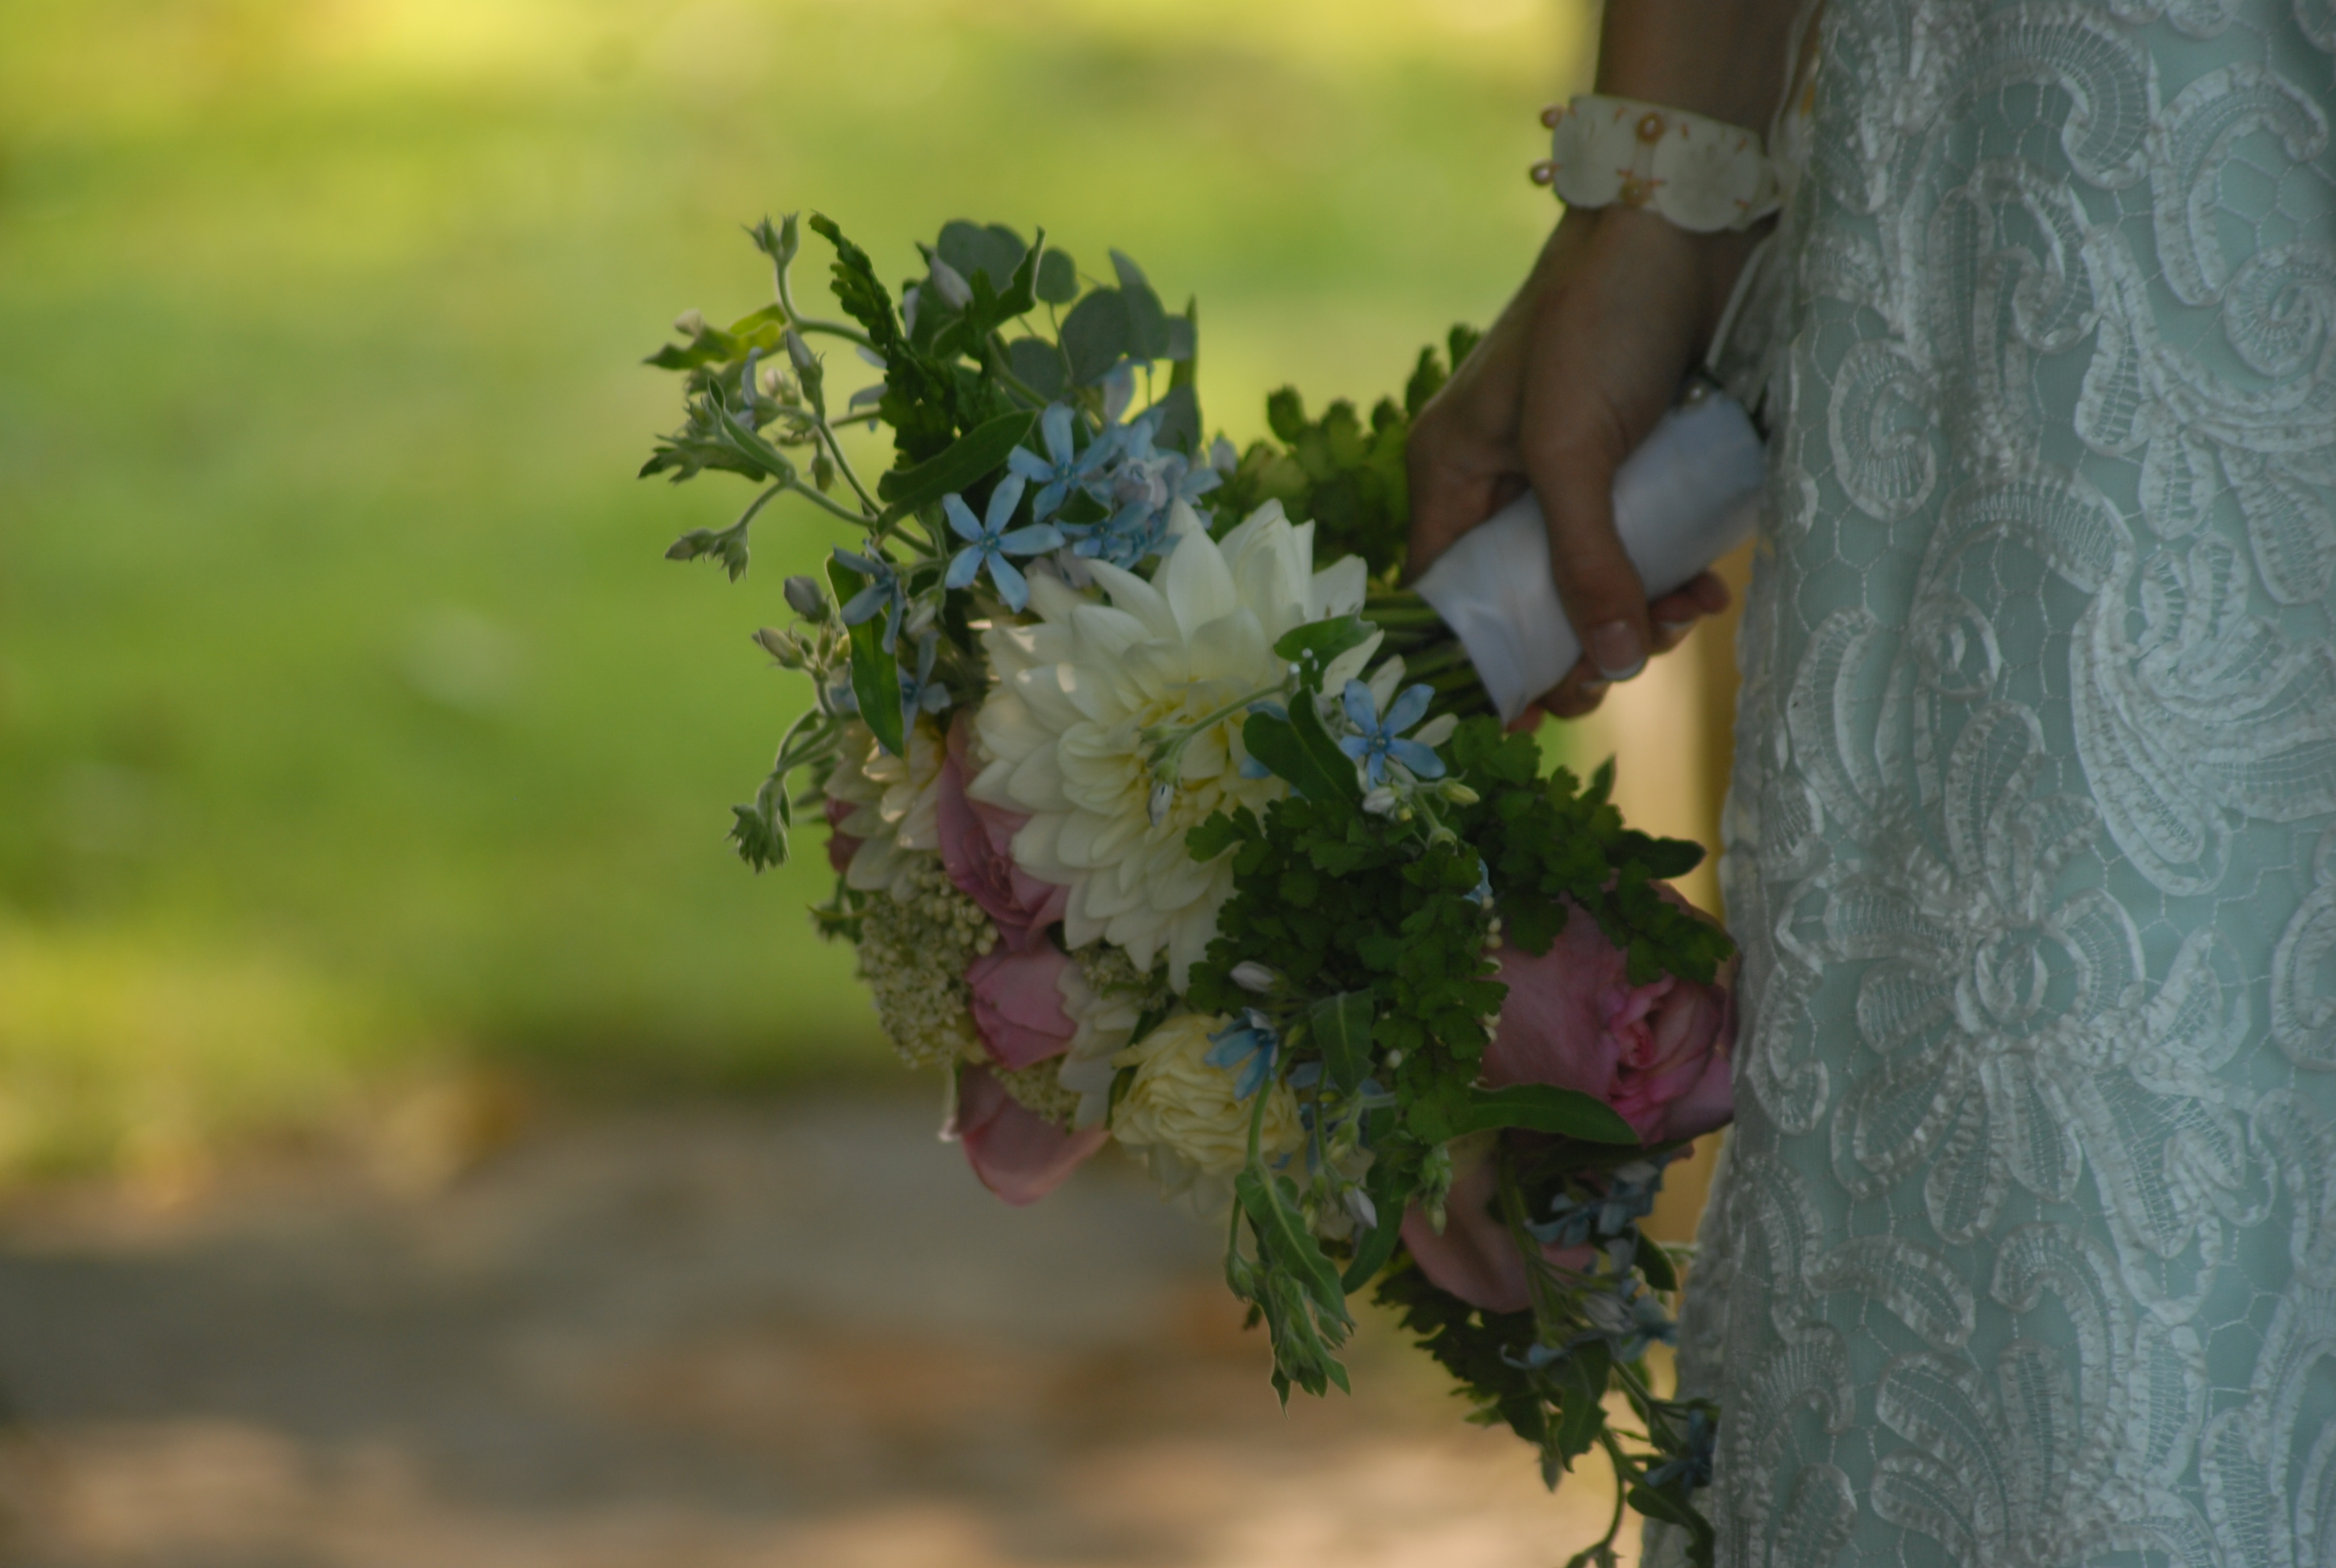 whidbey island wedding at Jenne farm bridal bouquet with dahlia, rose, fern image by Tonic Studio